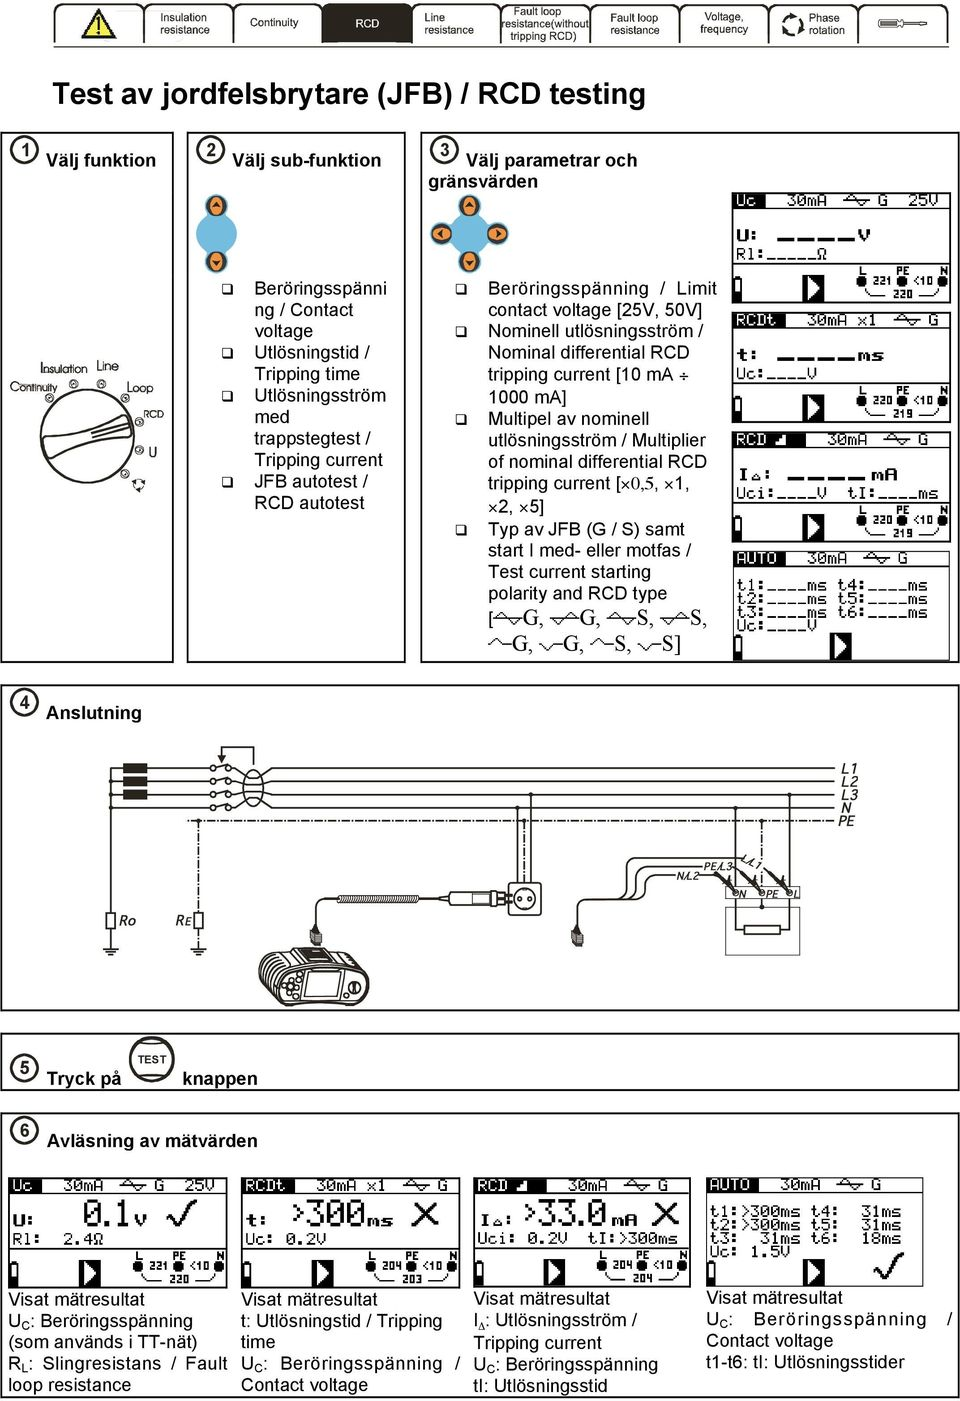 nominell utlösningsström / Multiplier of nominal differential RCD tripping current [ 0,5, 1, 2, 5] Typ av JFB (G / S) samt start I med- eller motfas / Test current starting polarity and RCD type [ G,